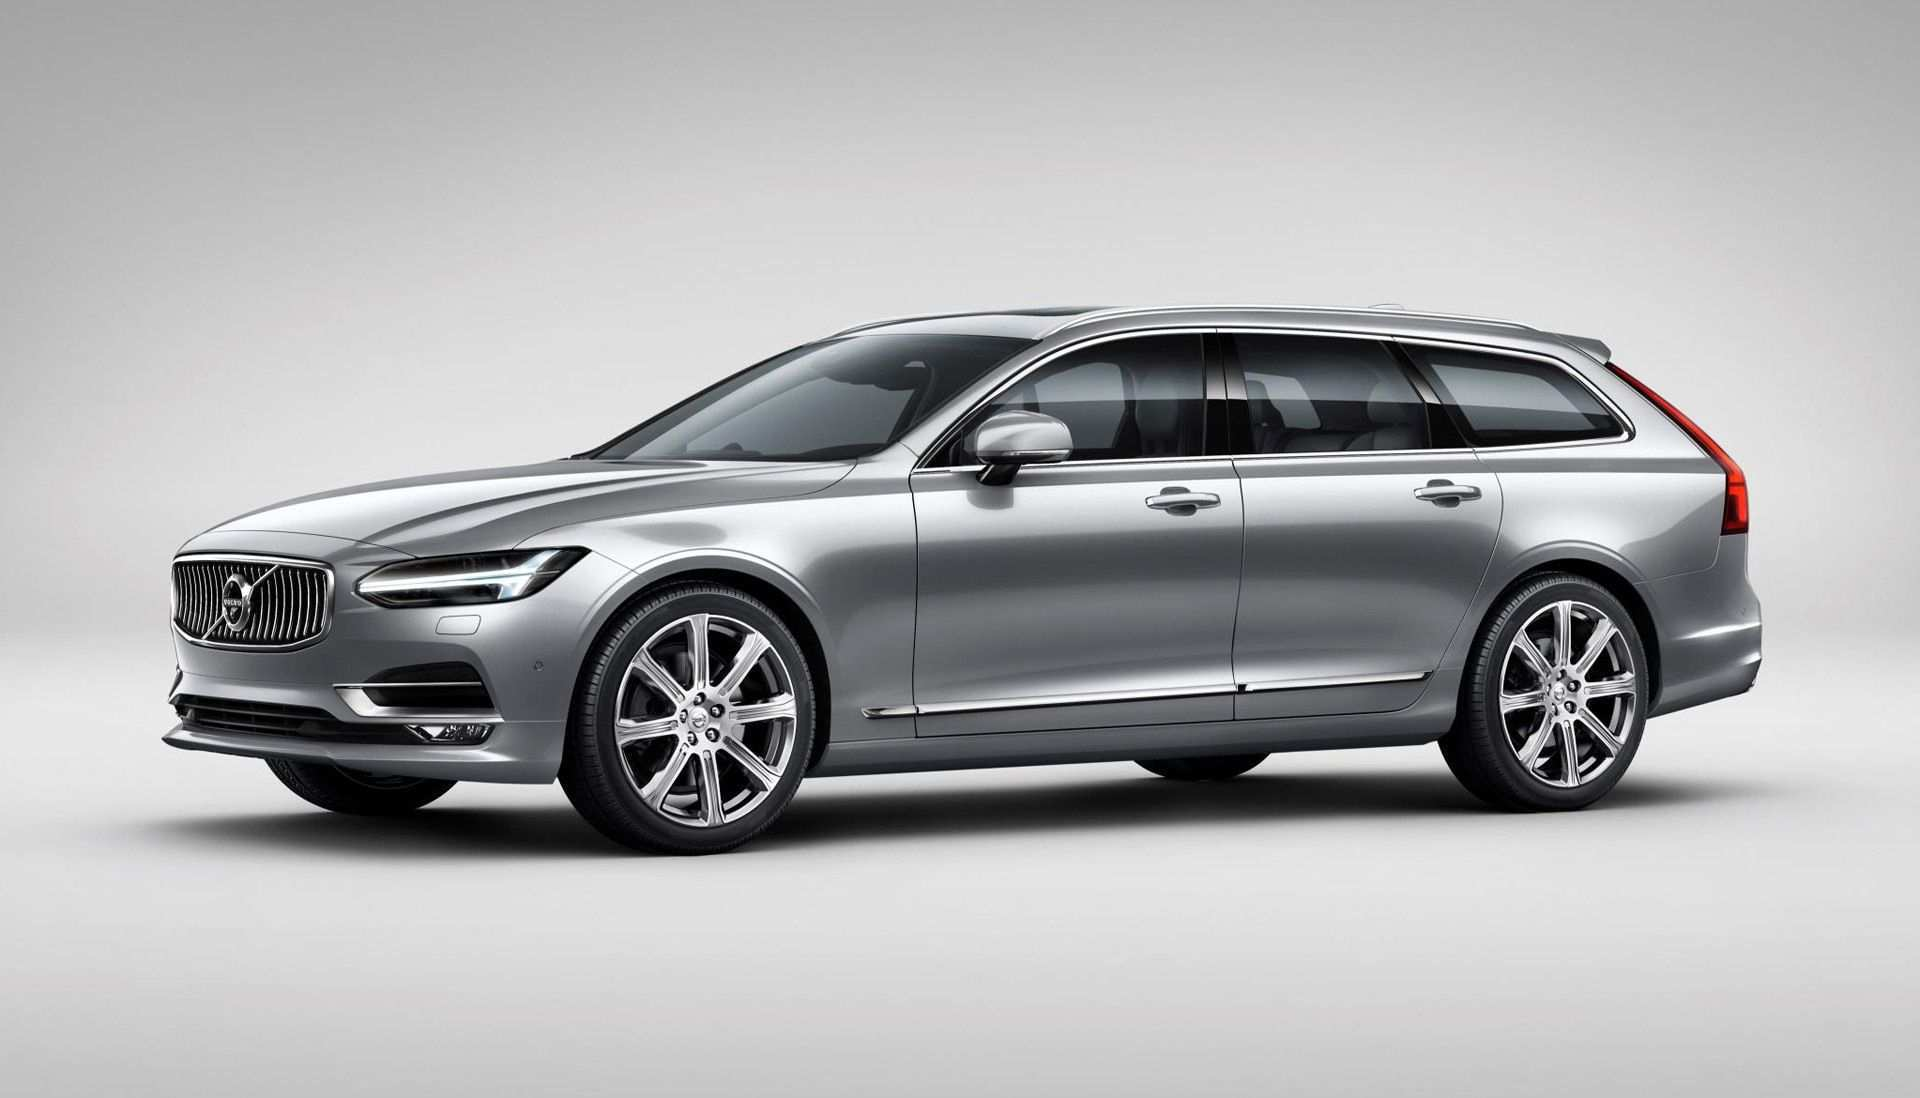 44 New Volvo 2020 V90 Pricing for Volvo 2020 V90